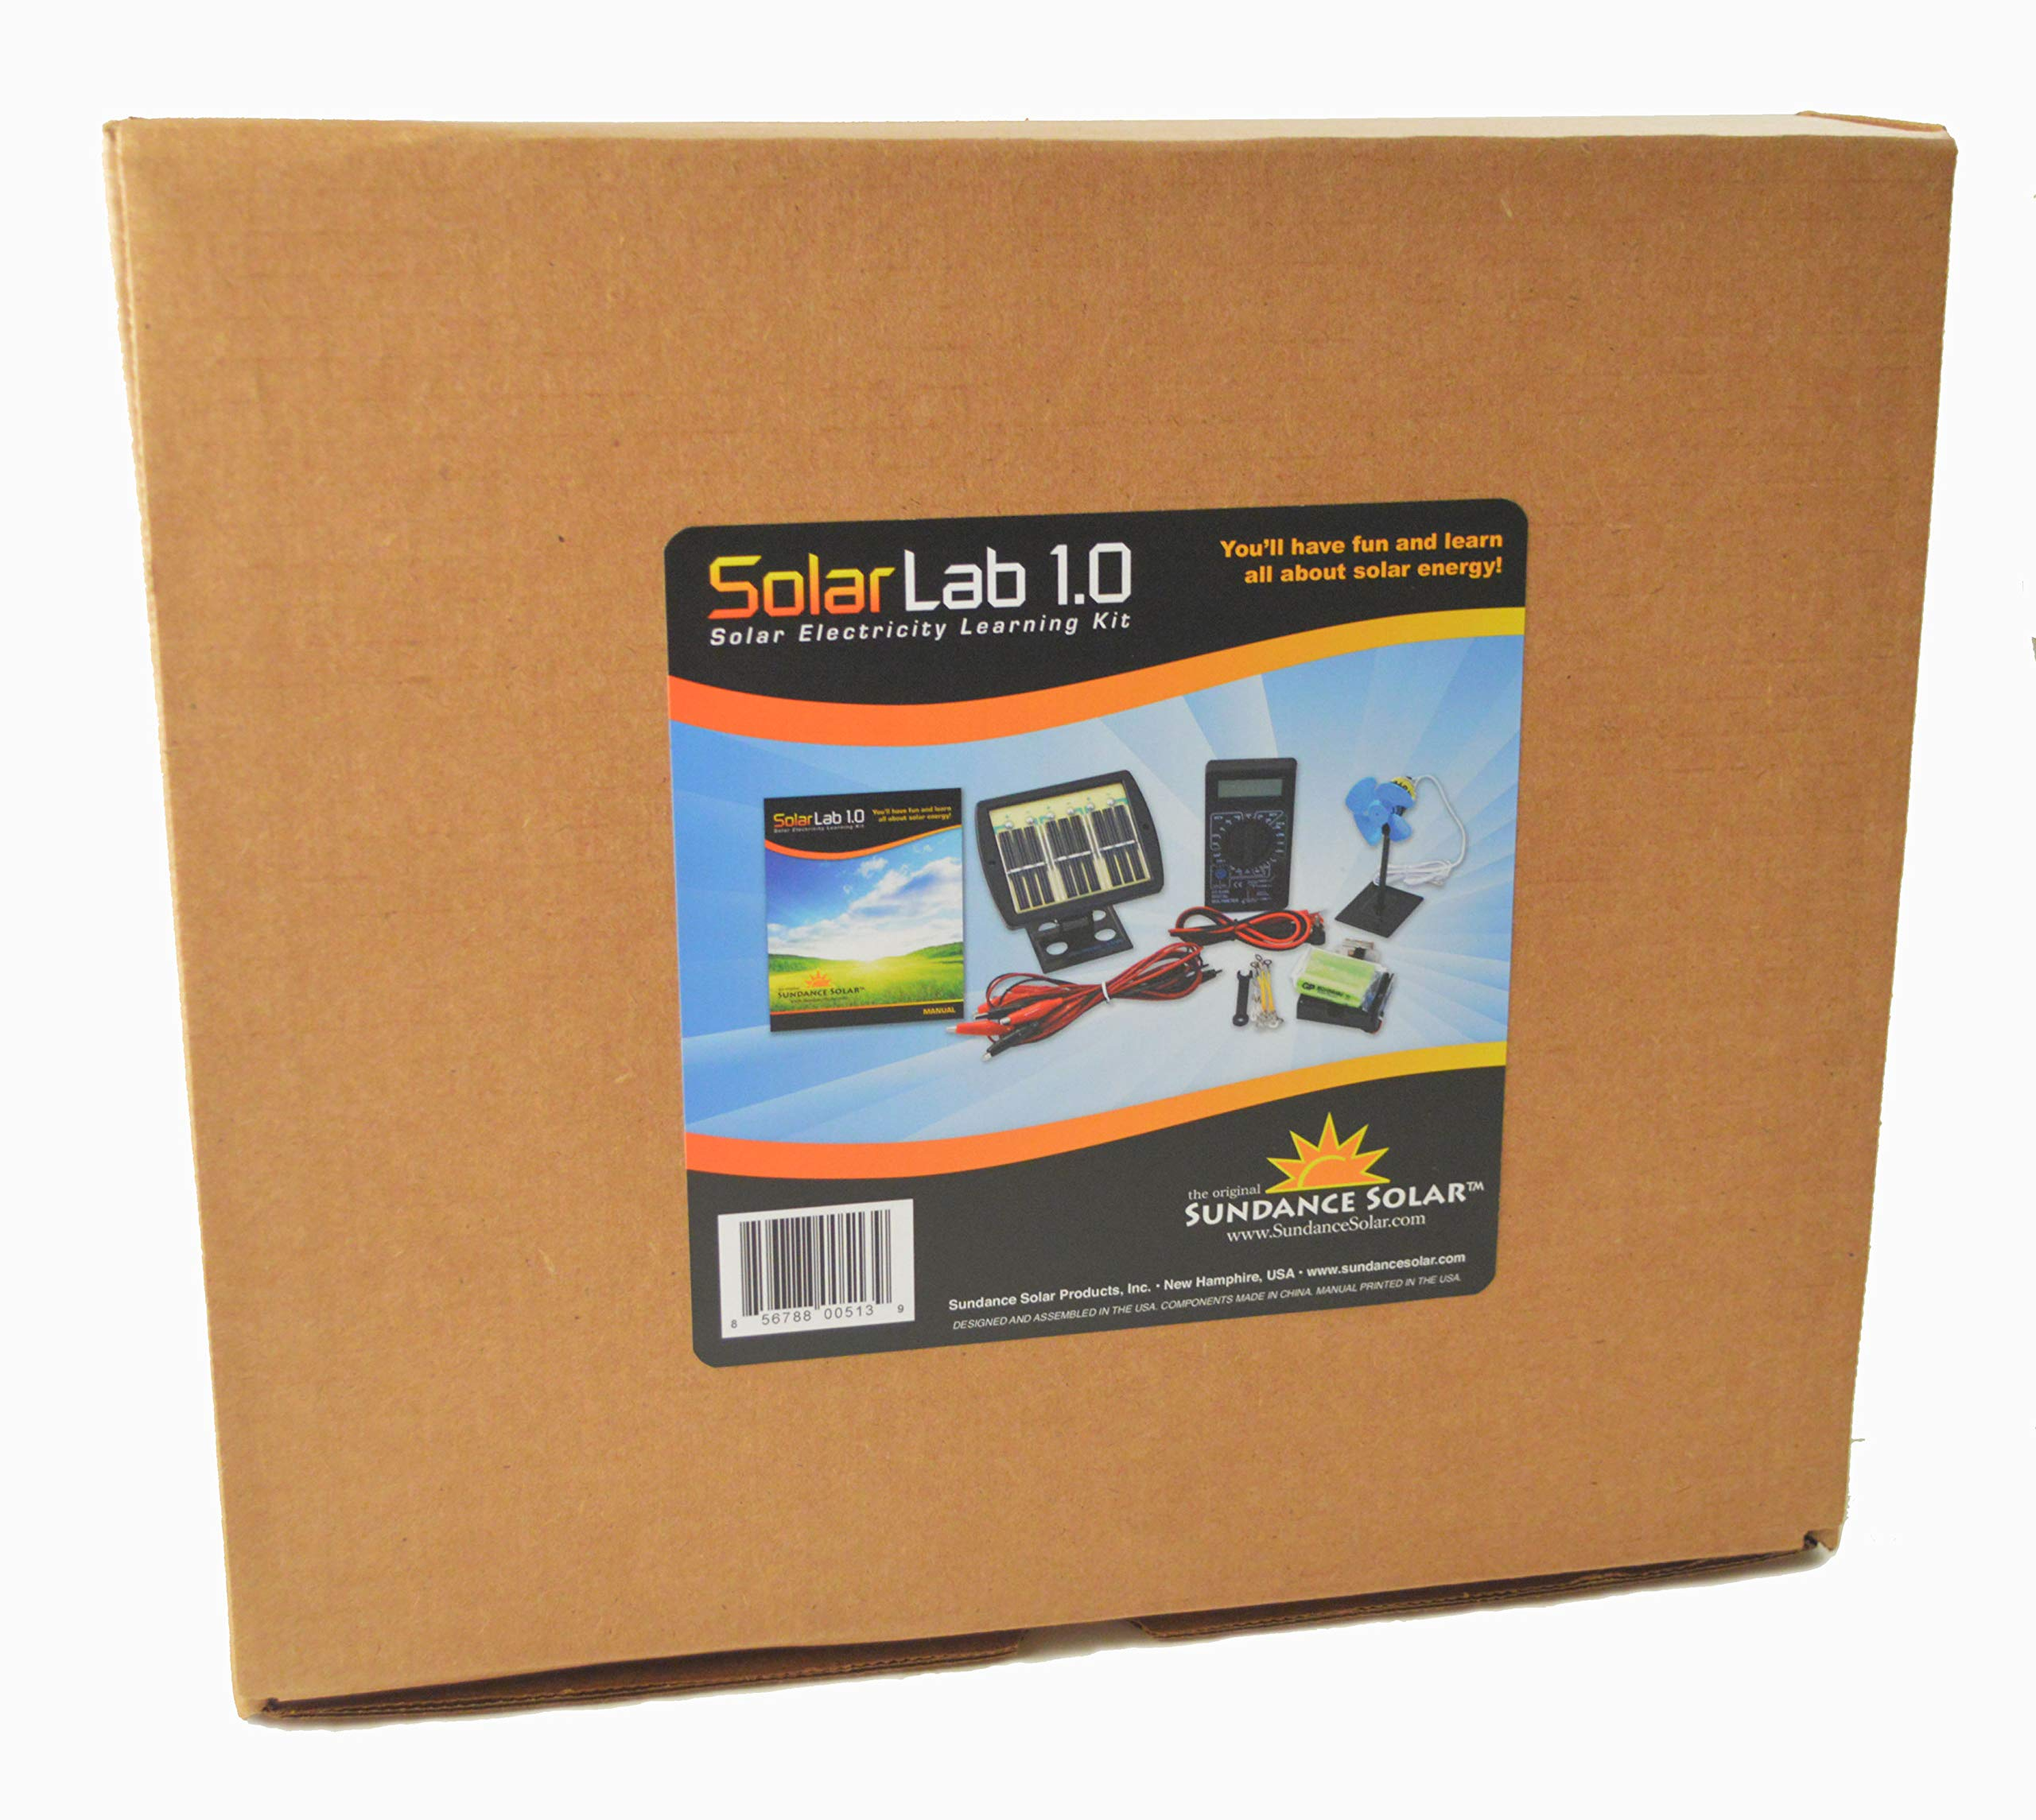 Solar Lab 1.0 Electricity Learning Kit by Sundance Solar